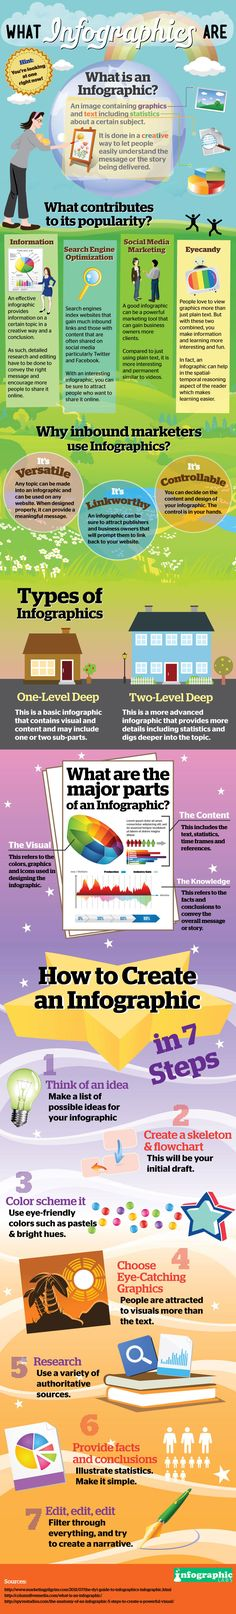 How To Create Your Own Infographics In 7 Steps [Infographic]